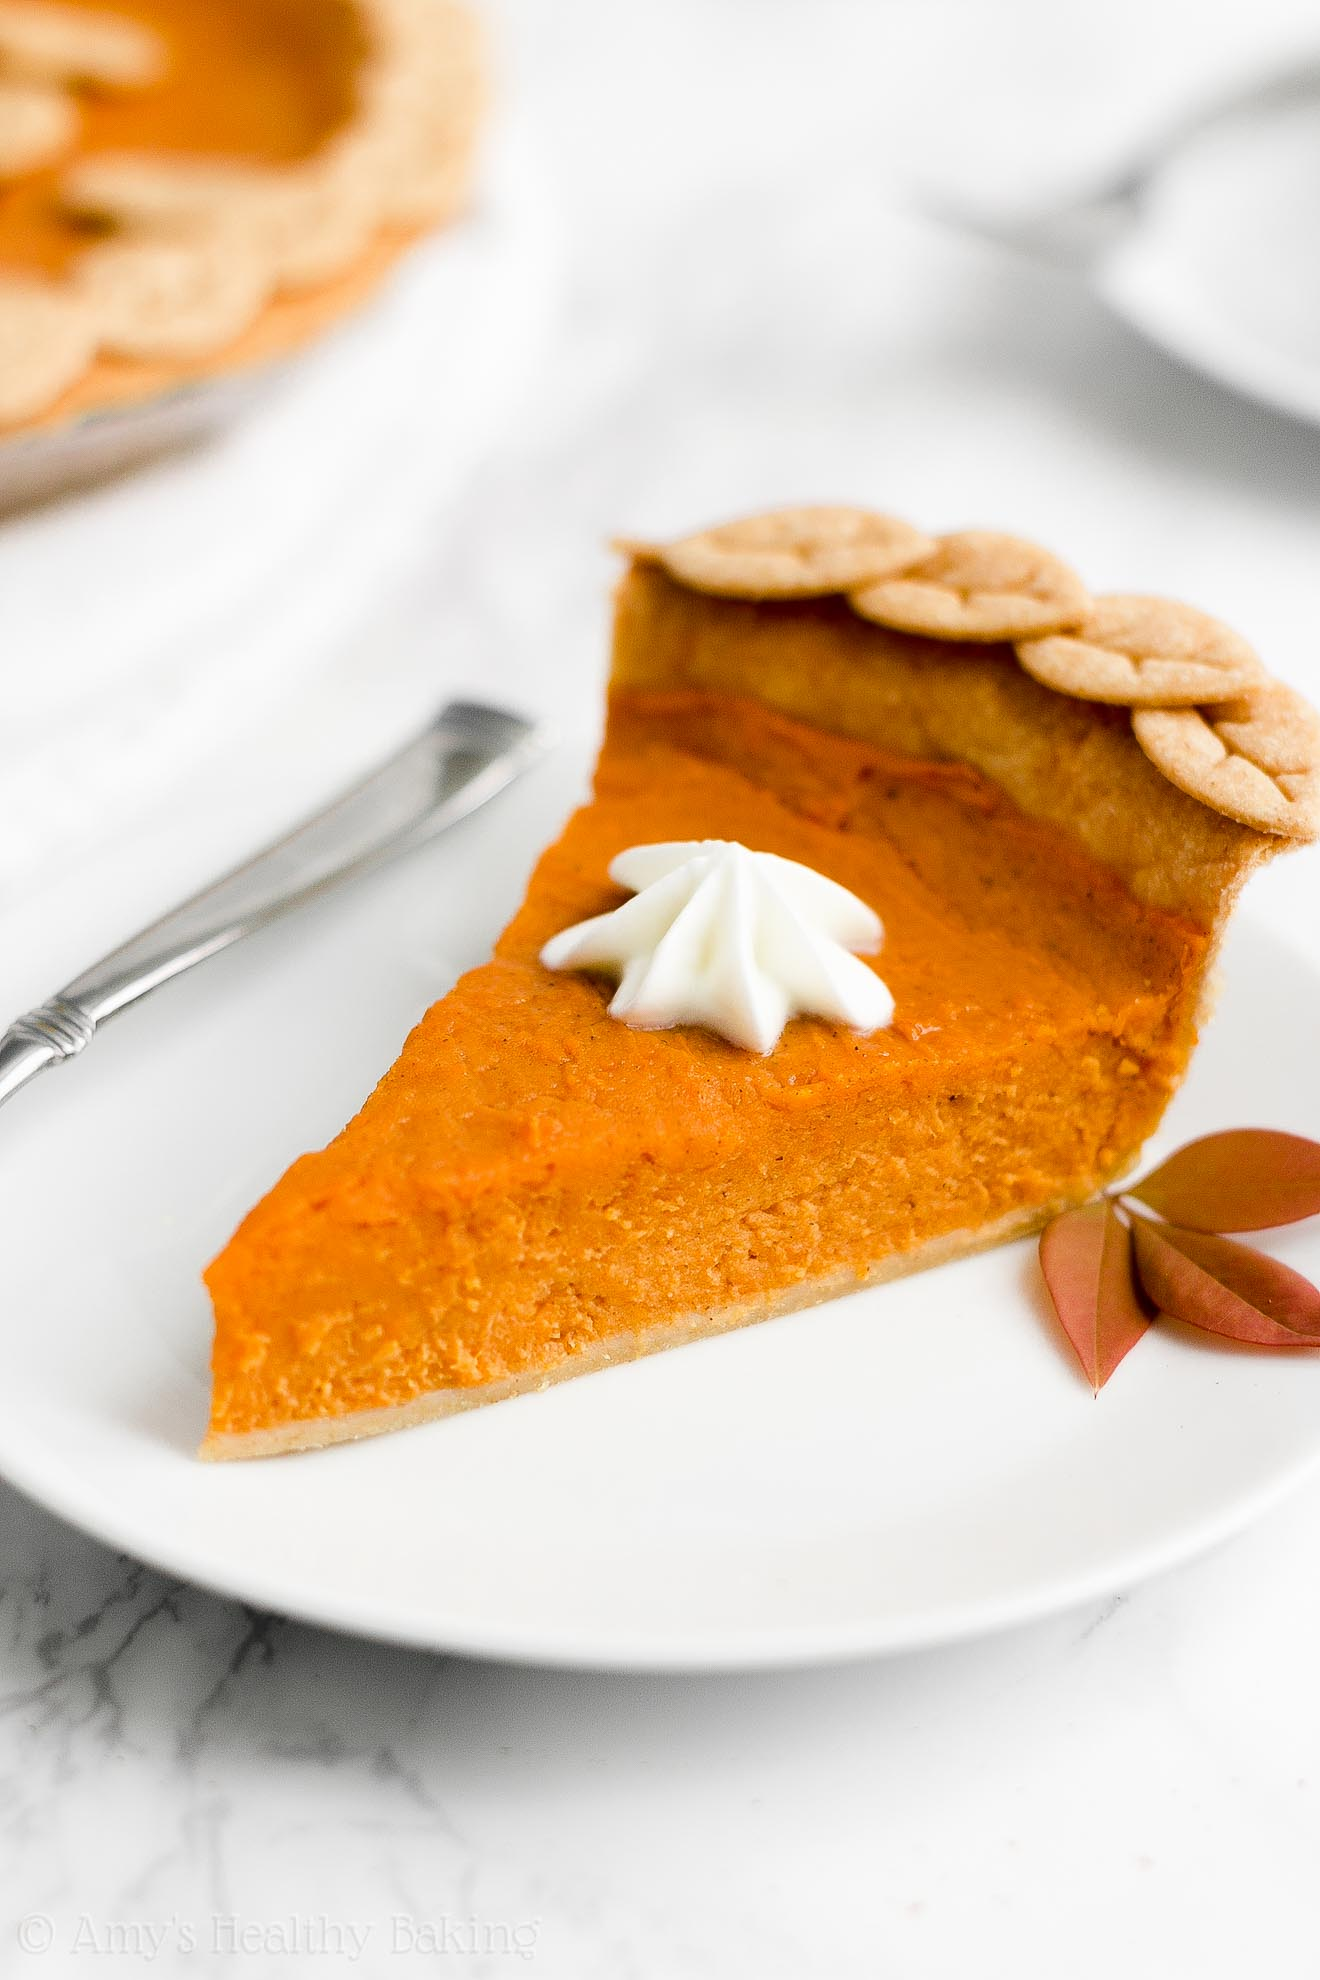 ULTIMATE Best Ever Healthy Classic Homemade Sweet Potato Pie from Scratch